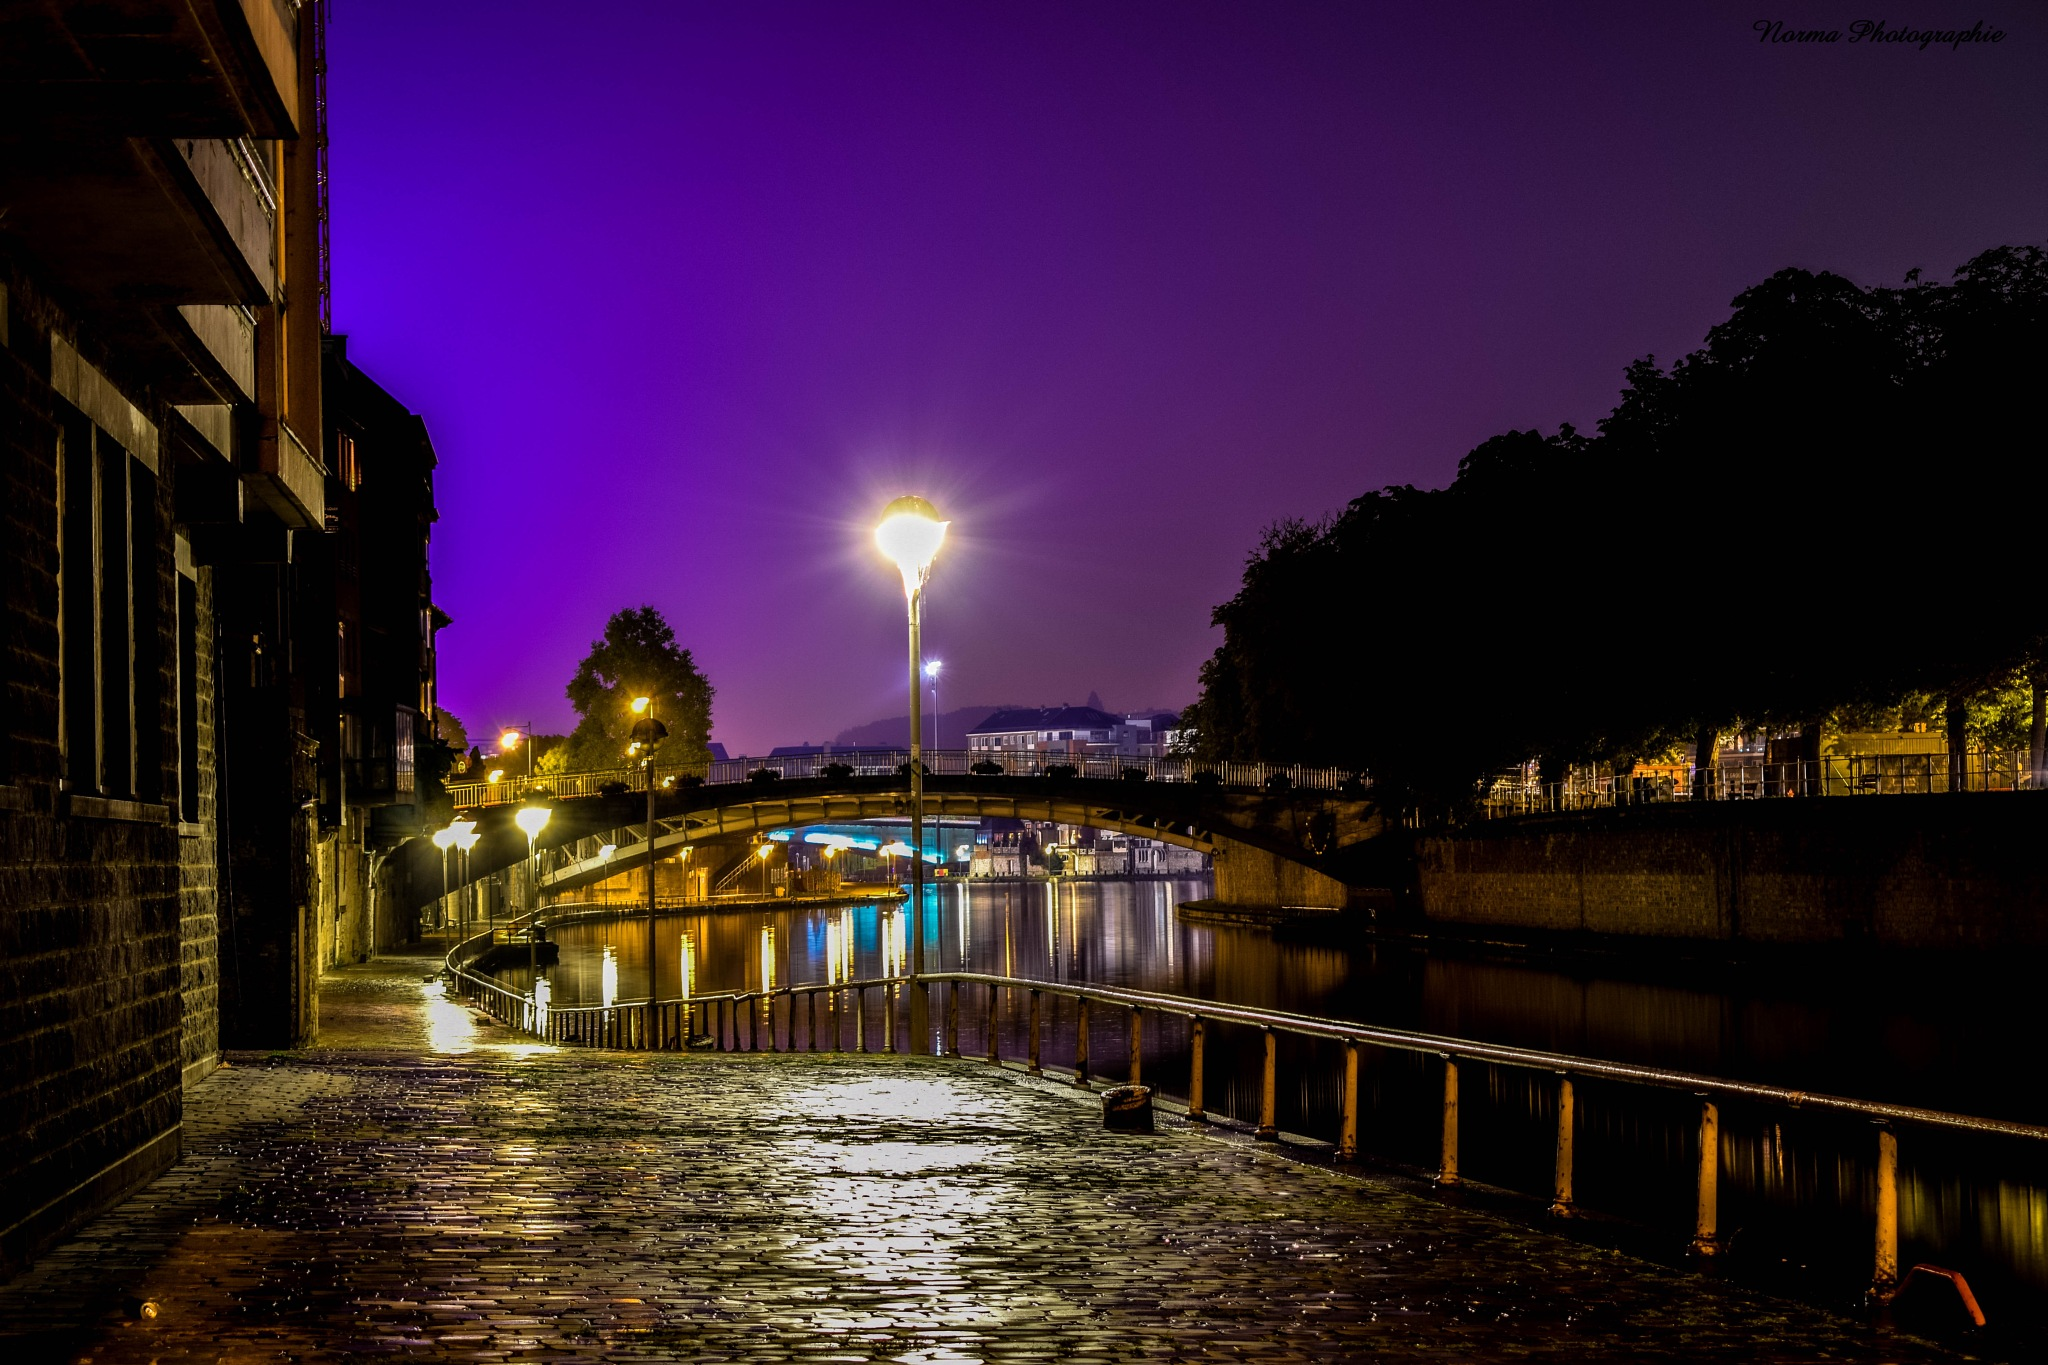 Namur by night  by Norma Photographie